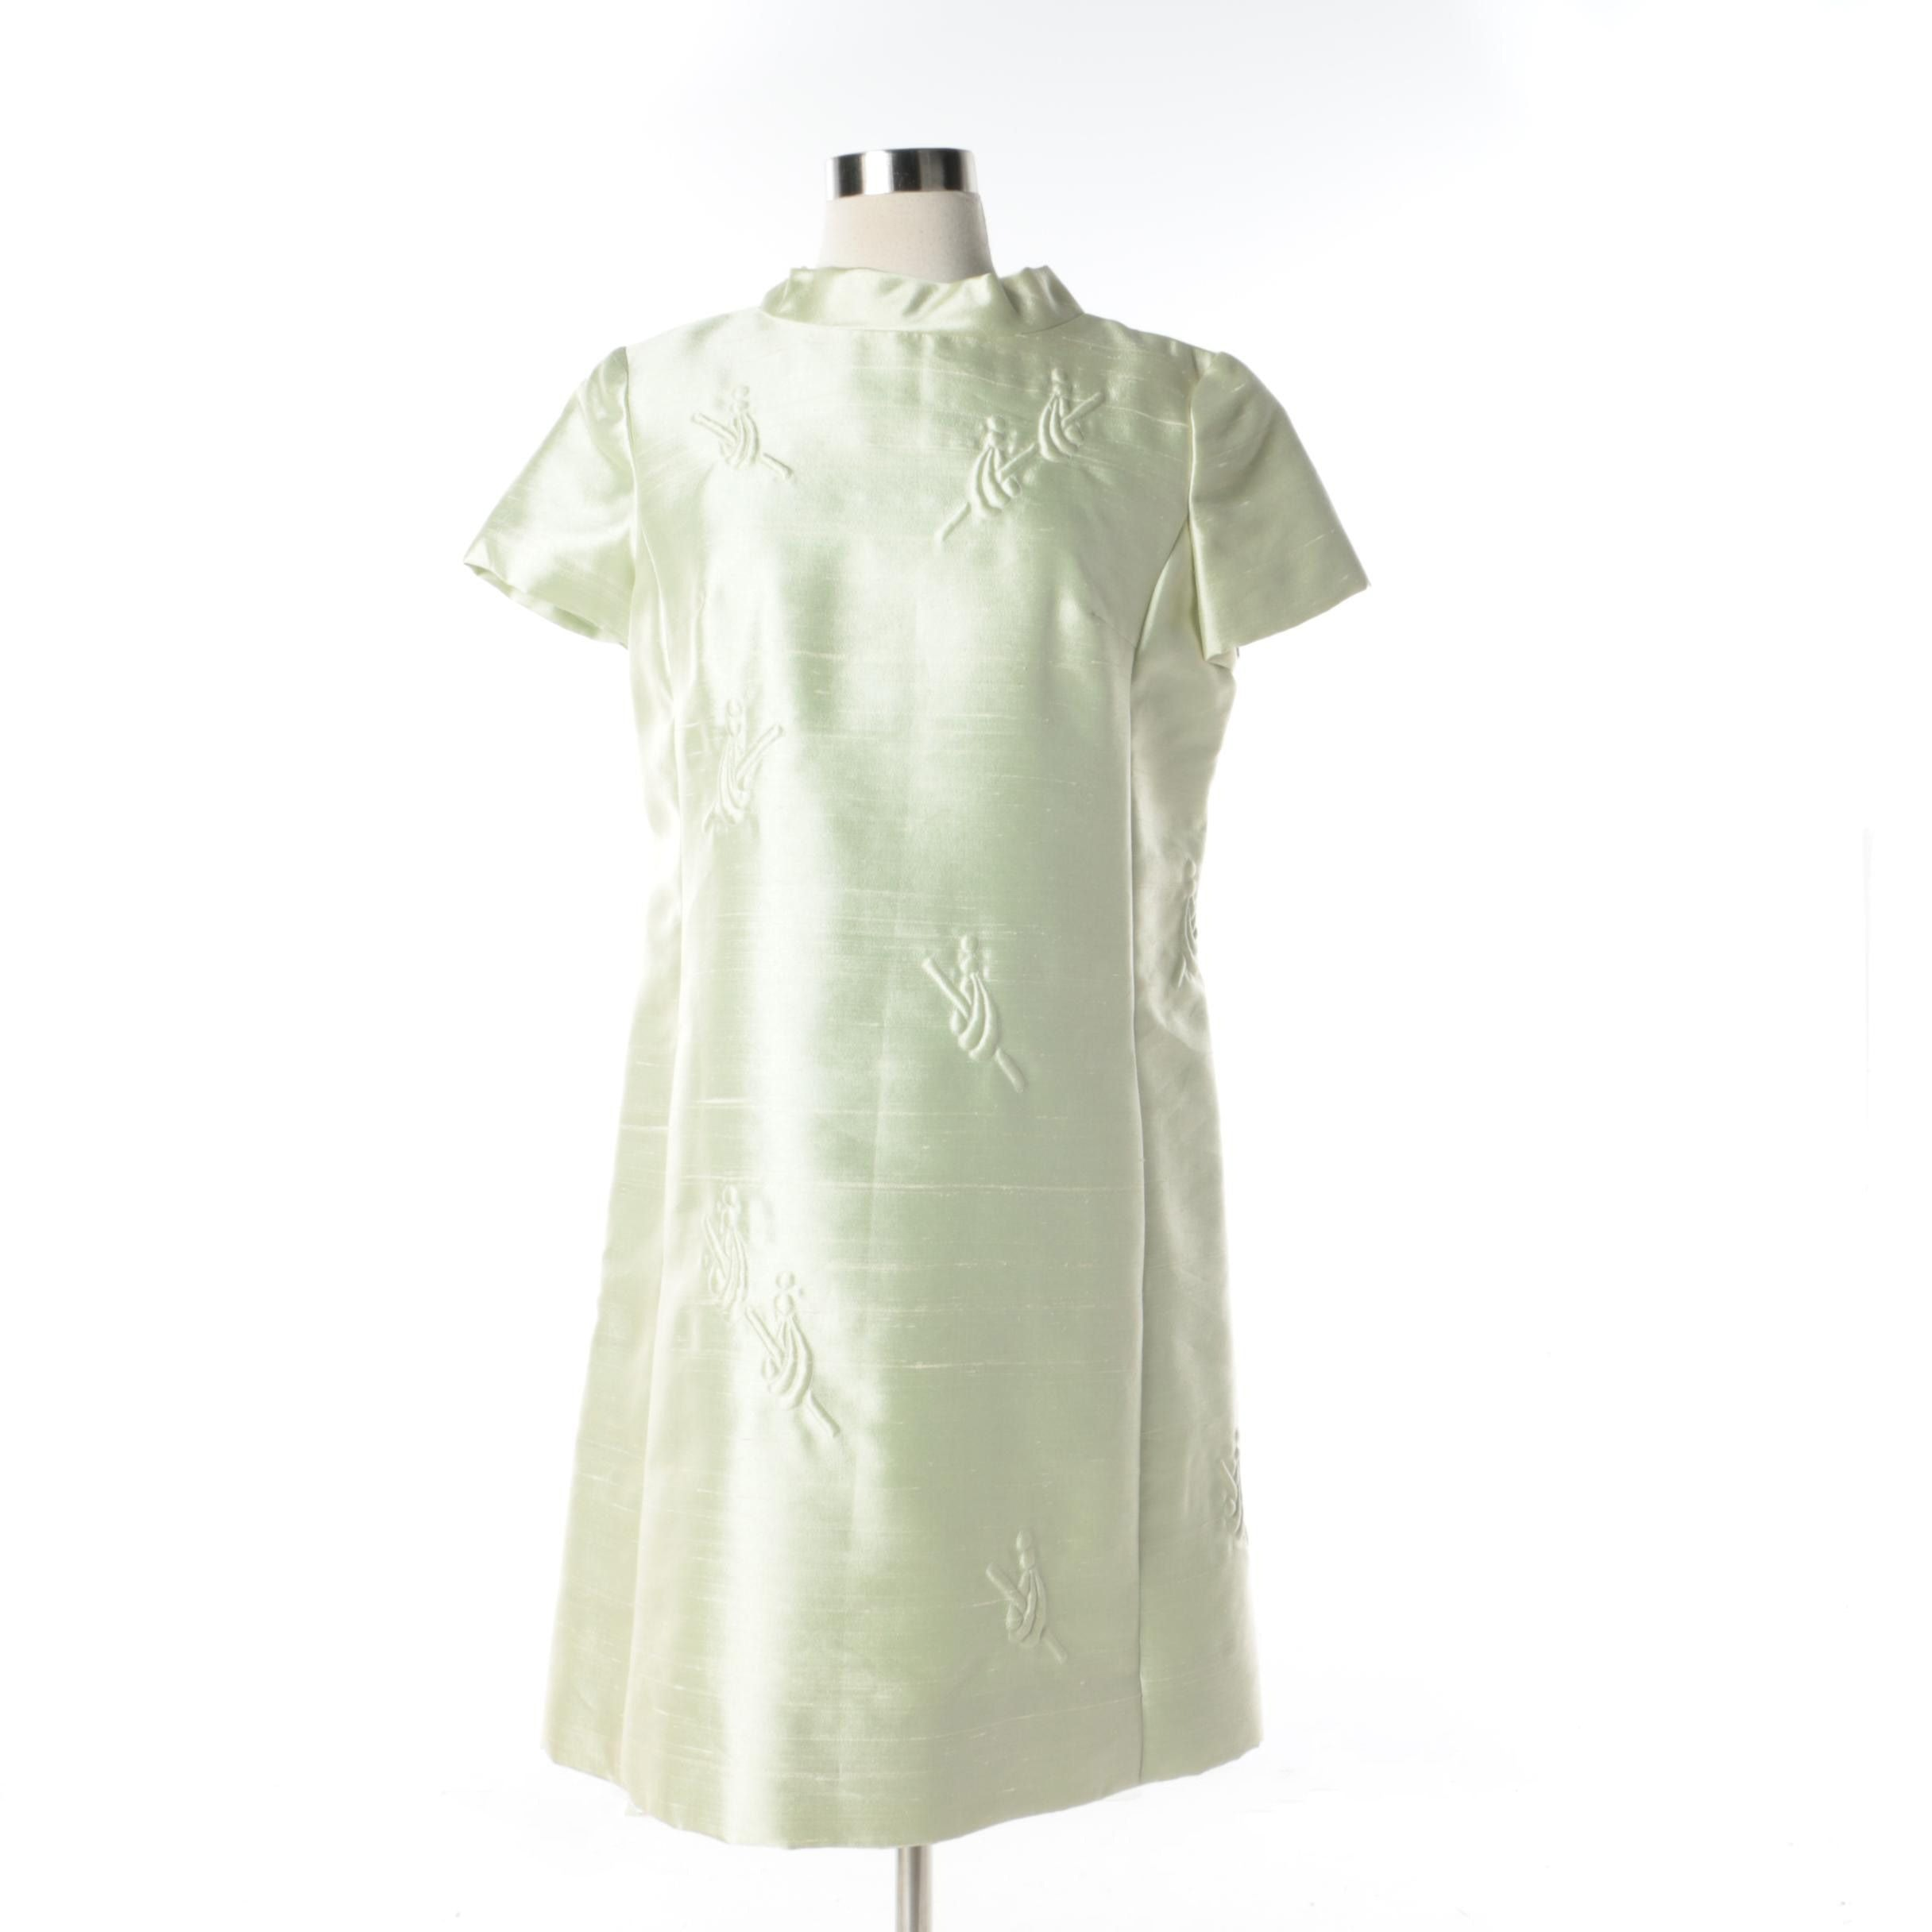 1960s Gidding Jenny Shannon Rodgers for Jerry Silverman Mint Green Silk Dress